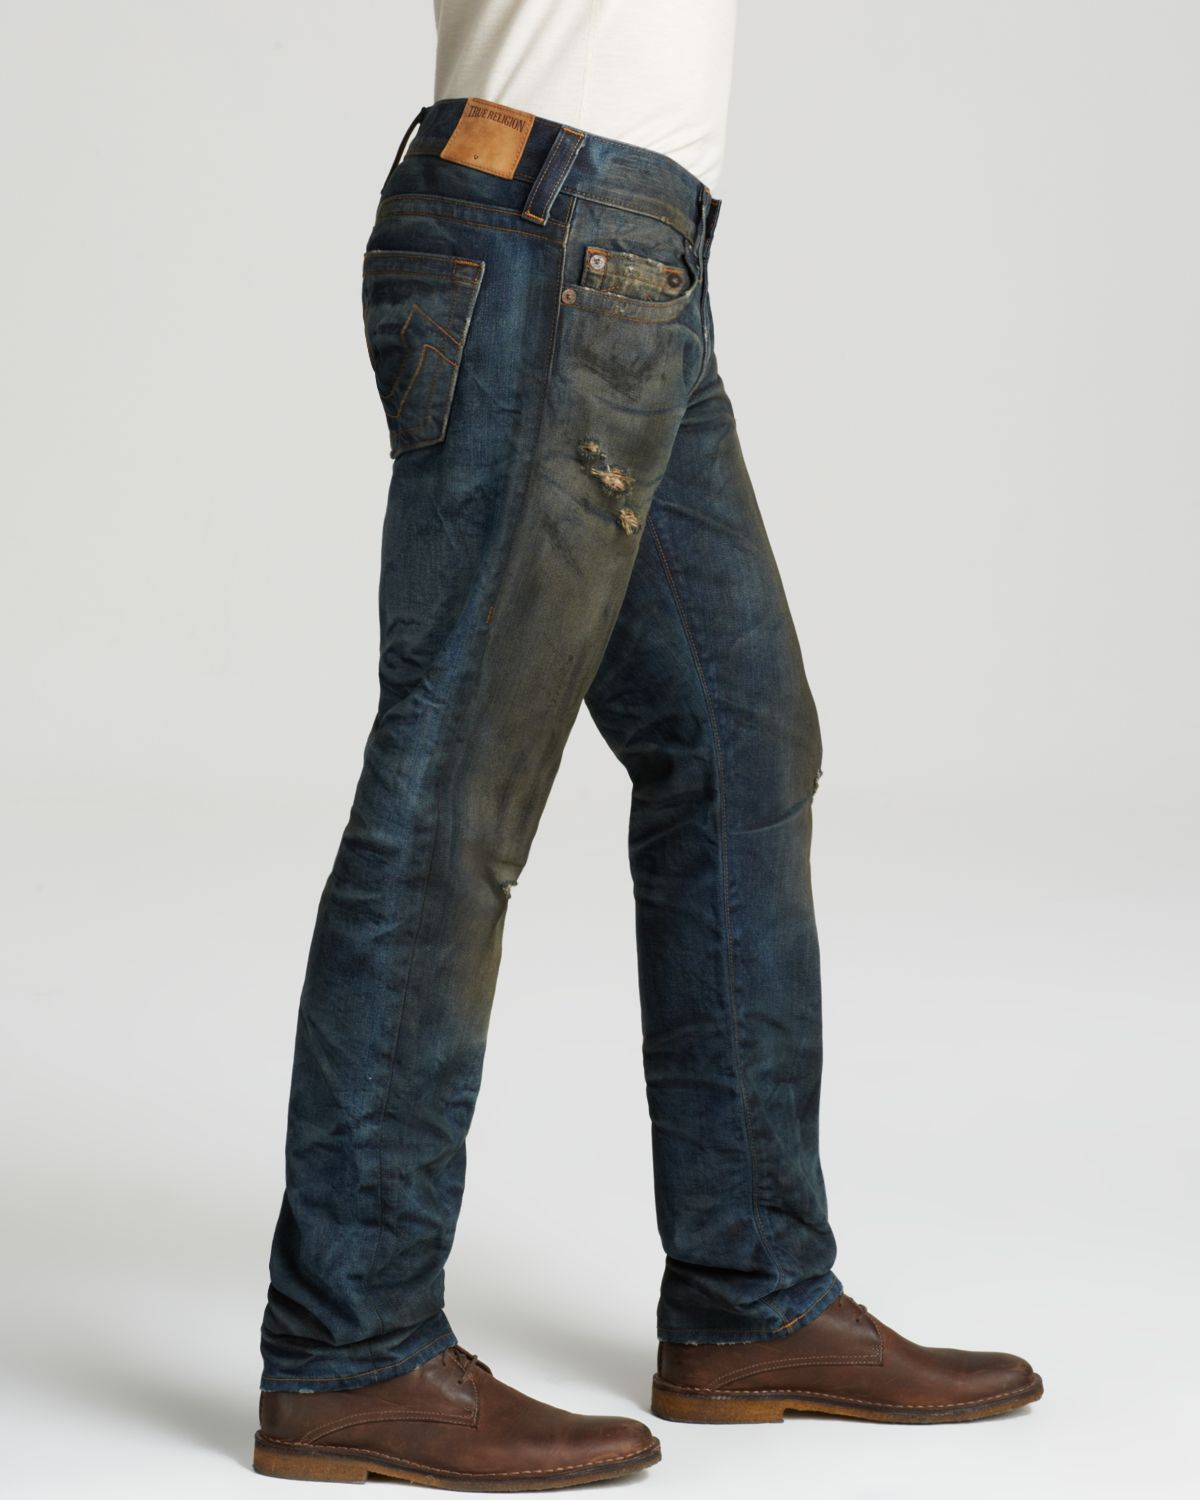 Lyst - True Religion Jeans - Geno Straight Fit In Rough ...